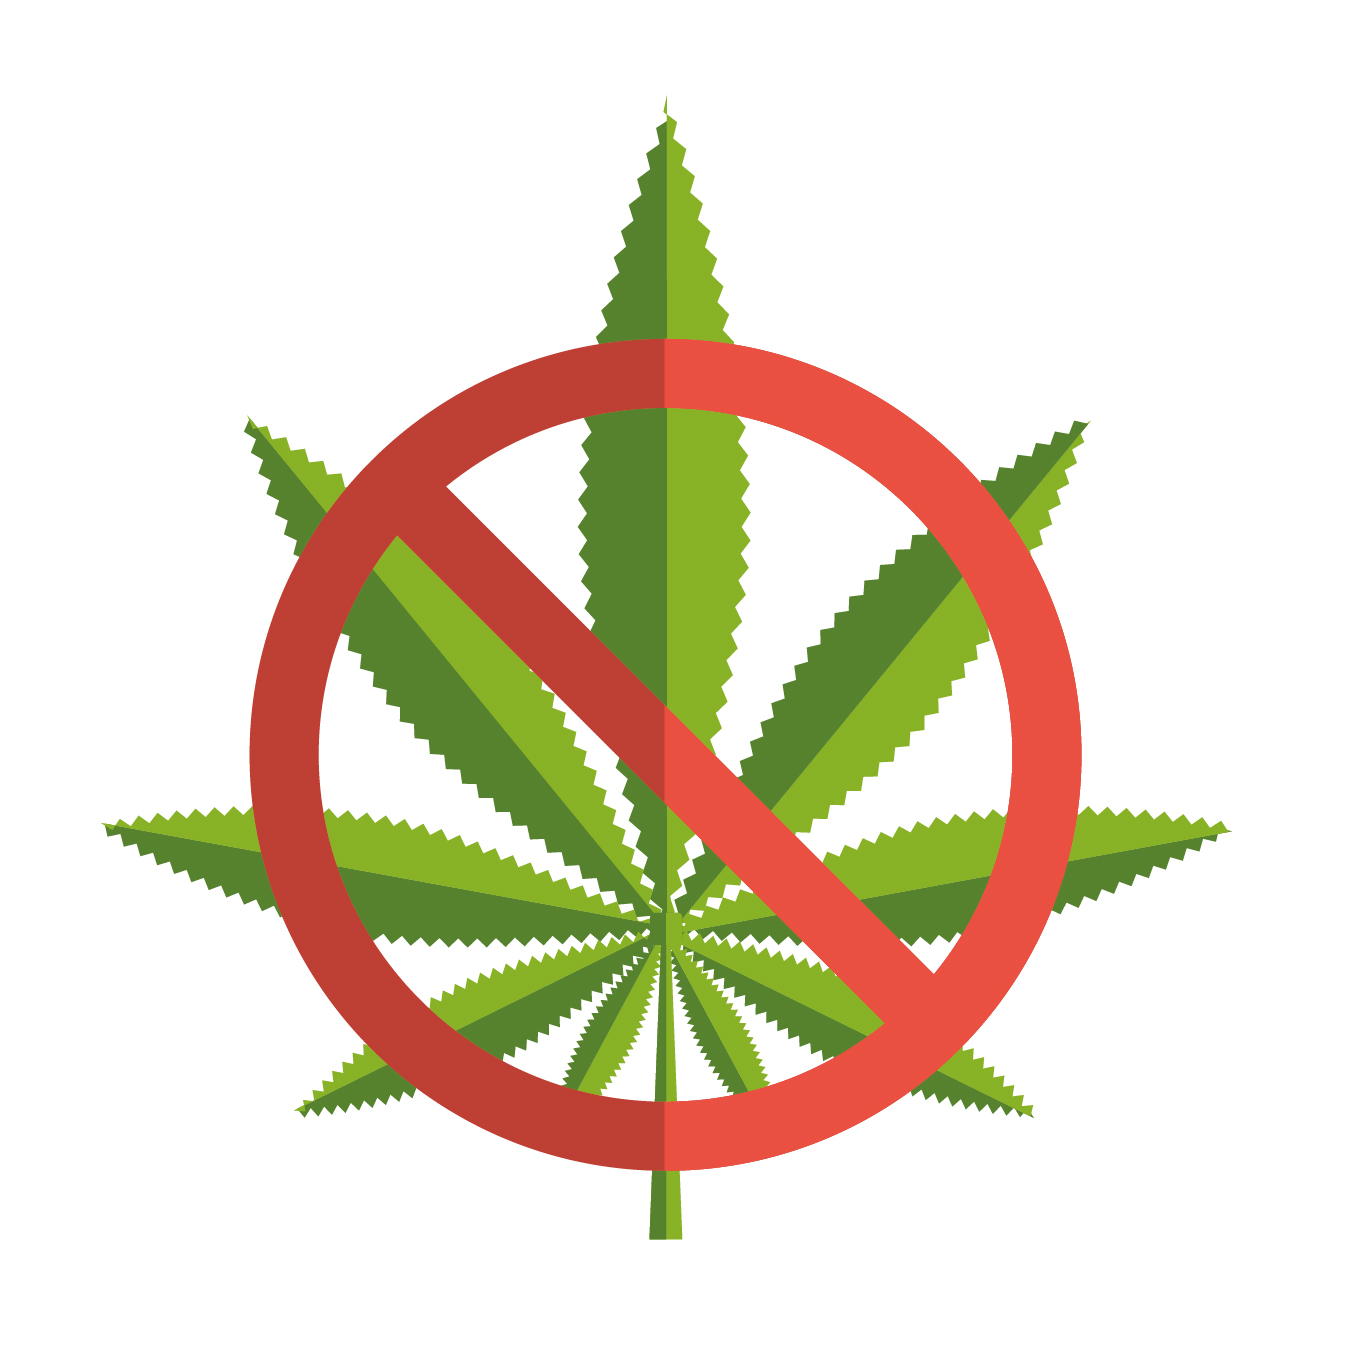 No cannabis symbol